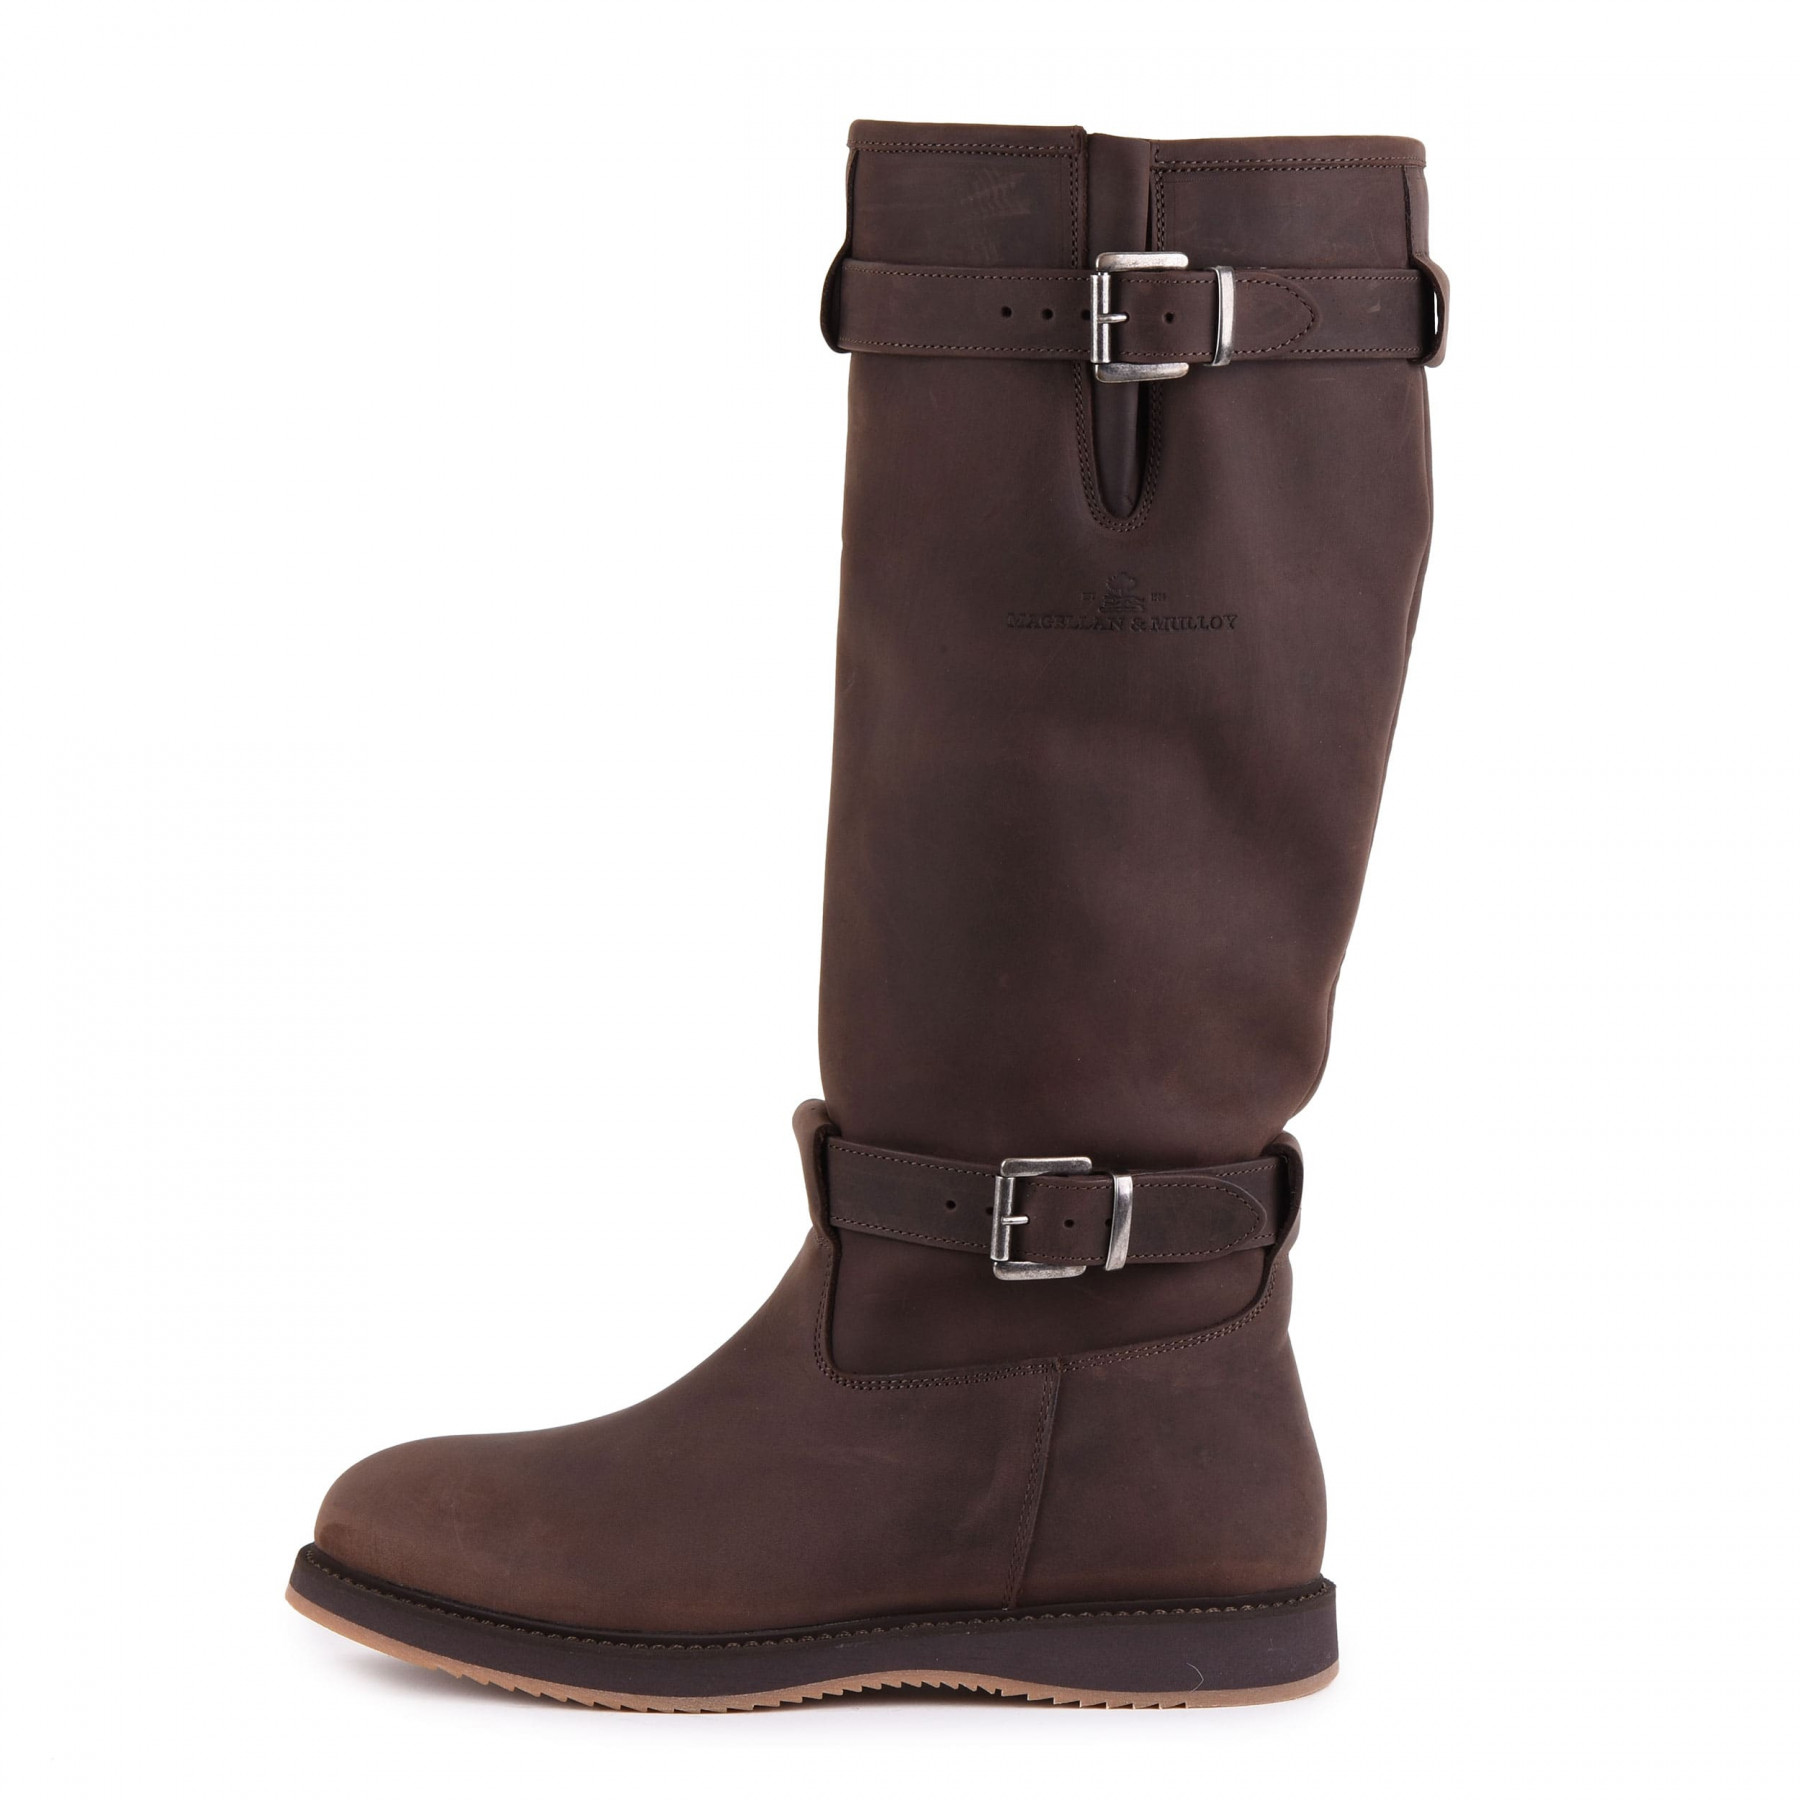 Magellan & Mulloy Xscape Denver Brown, dunkelbraune Herren Outdoor Stiefel